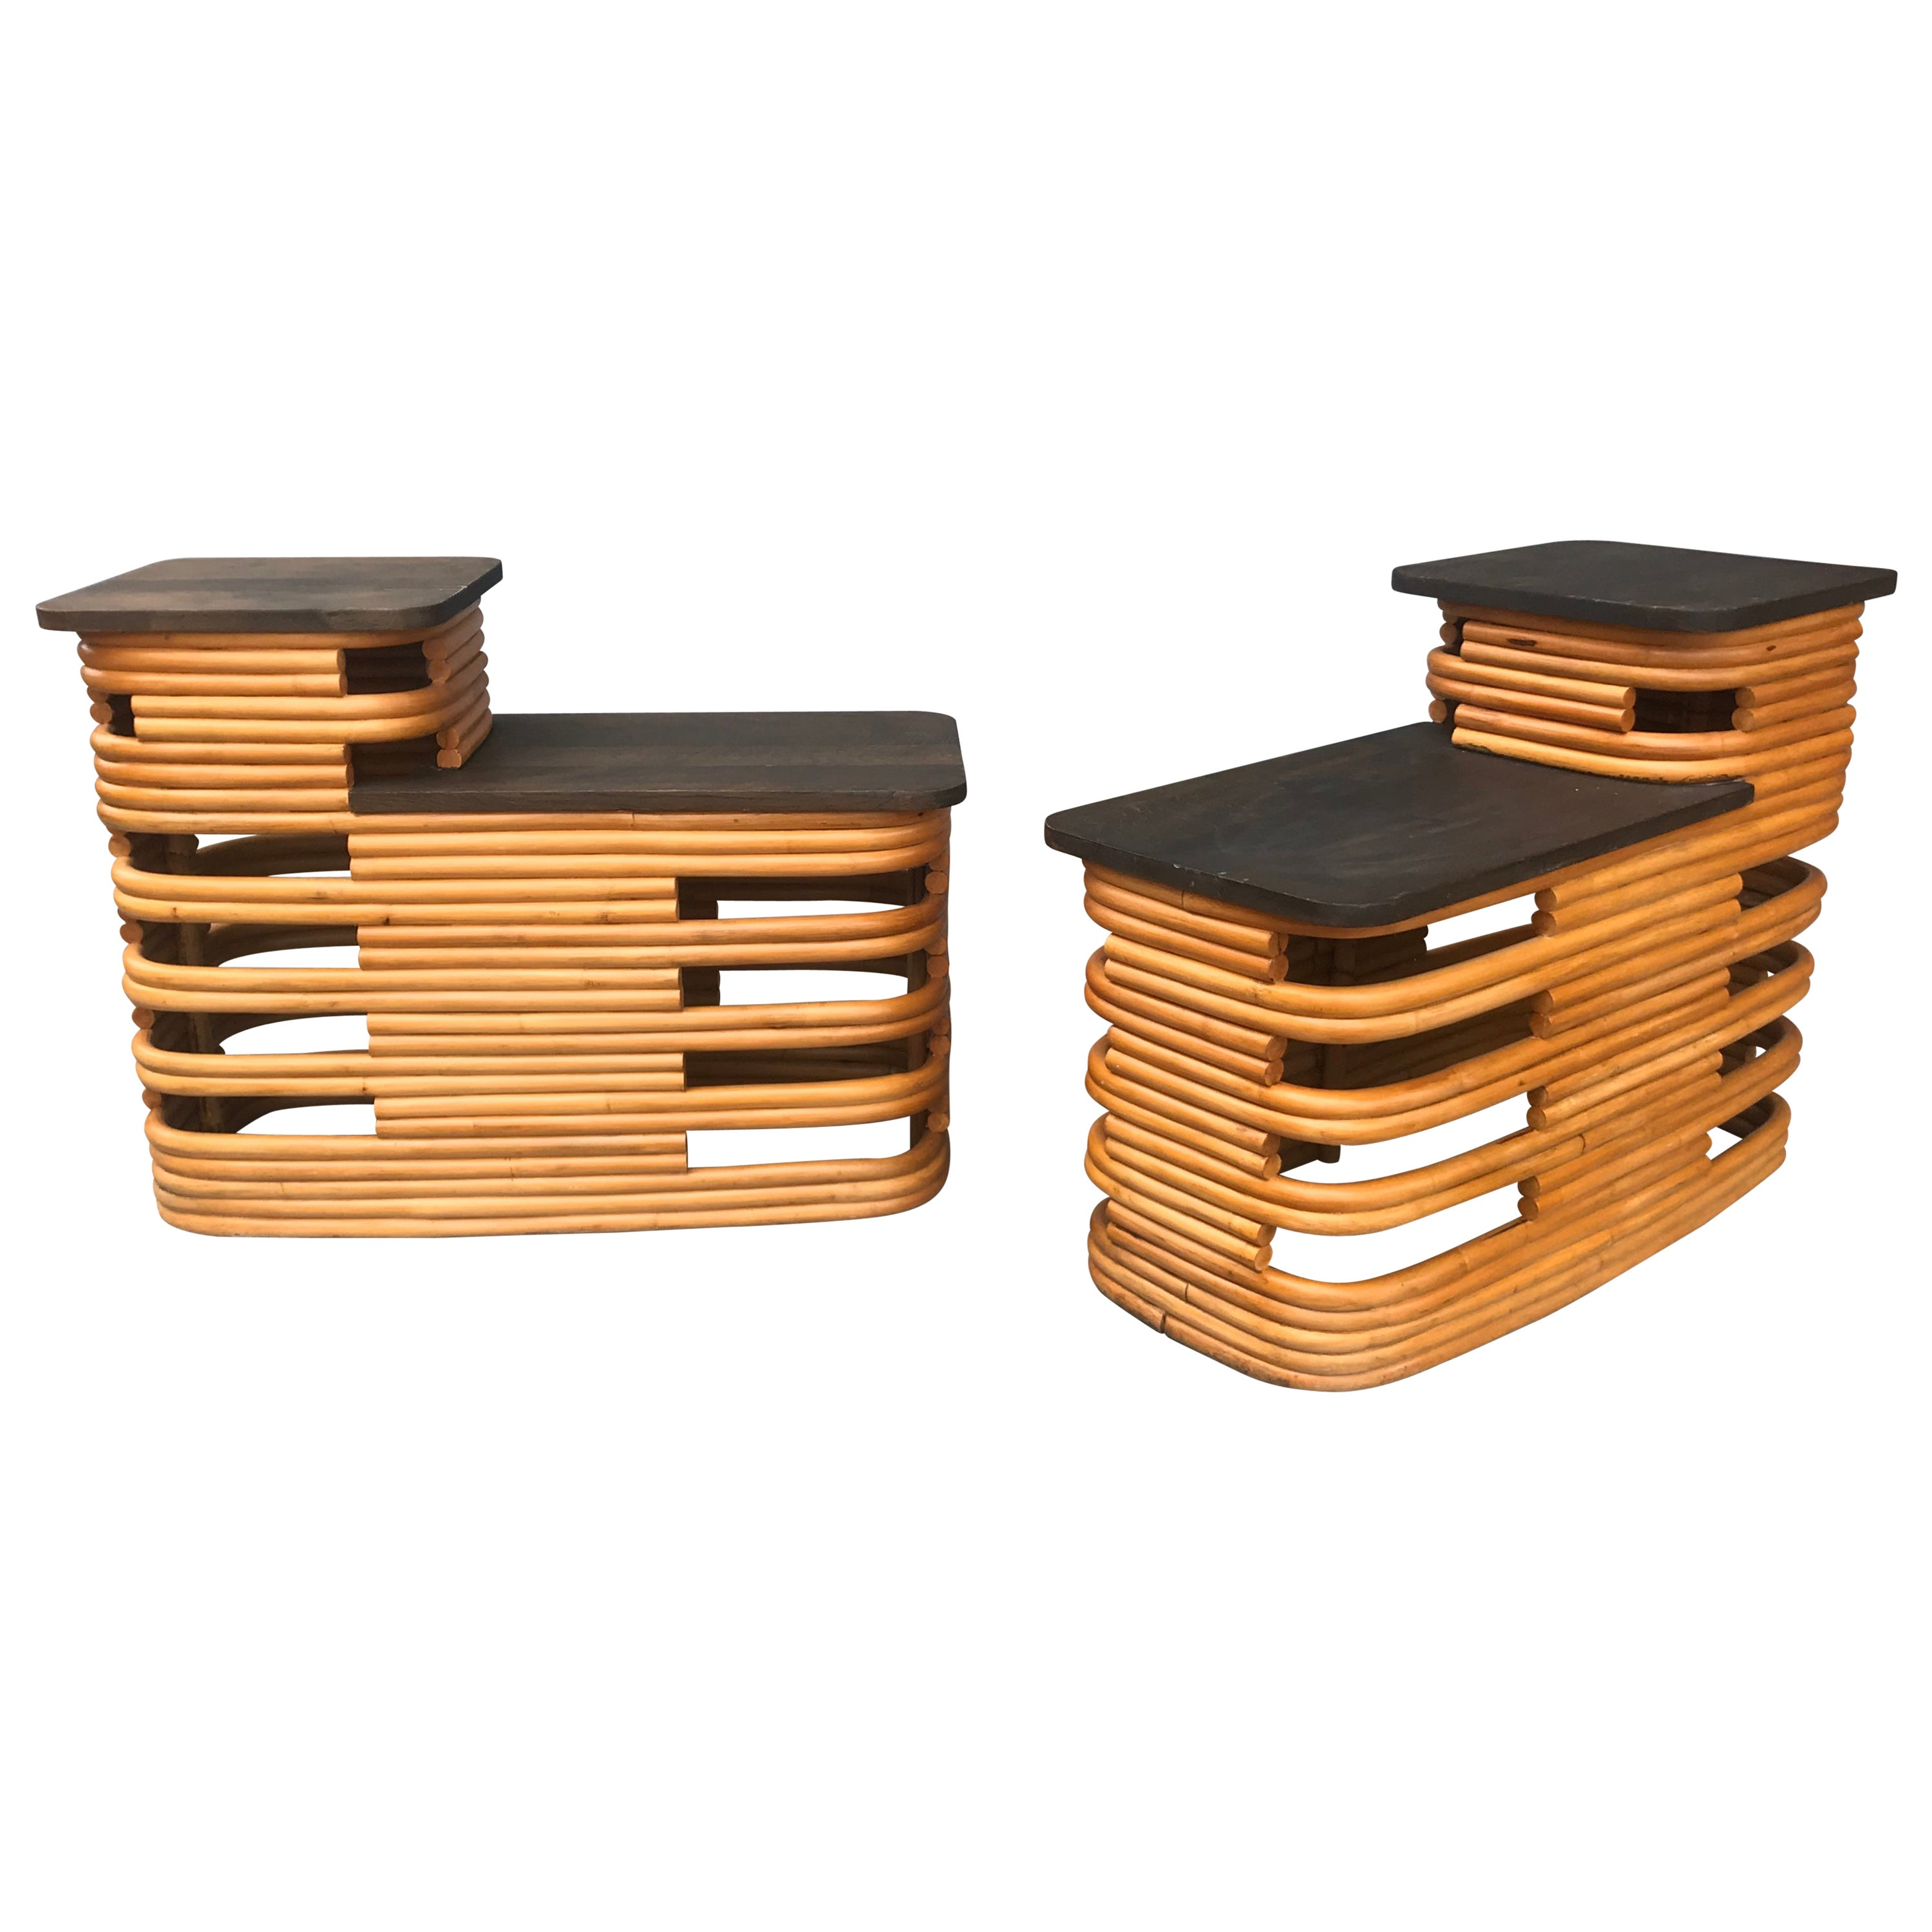 Classic 1940s Paul Frankl Rattan /Bamboo Step End Tables, Art Deco Design